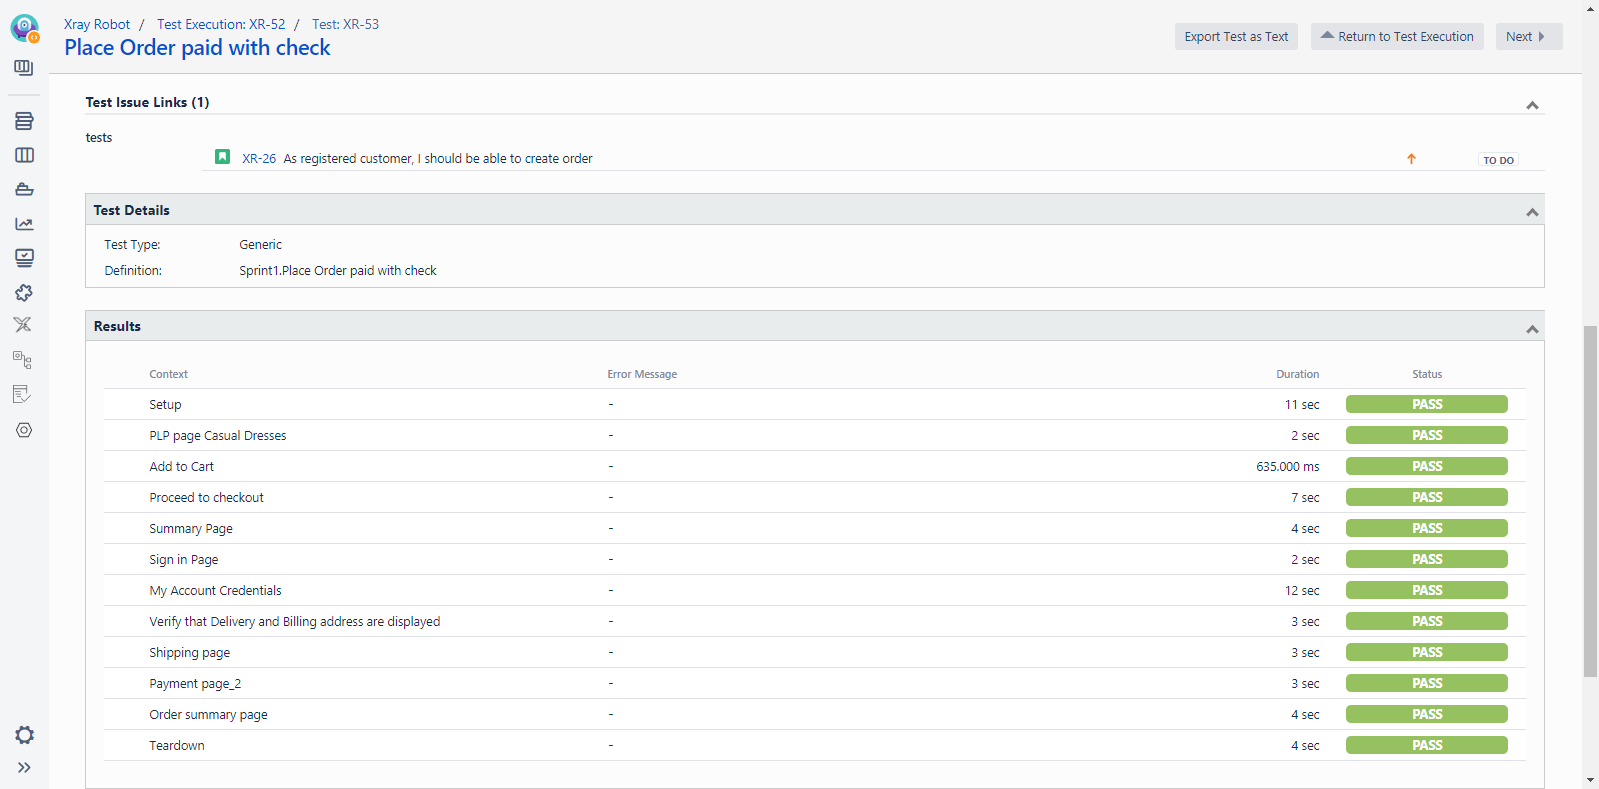 Execution details with keywords from the executed Robot test